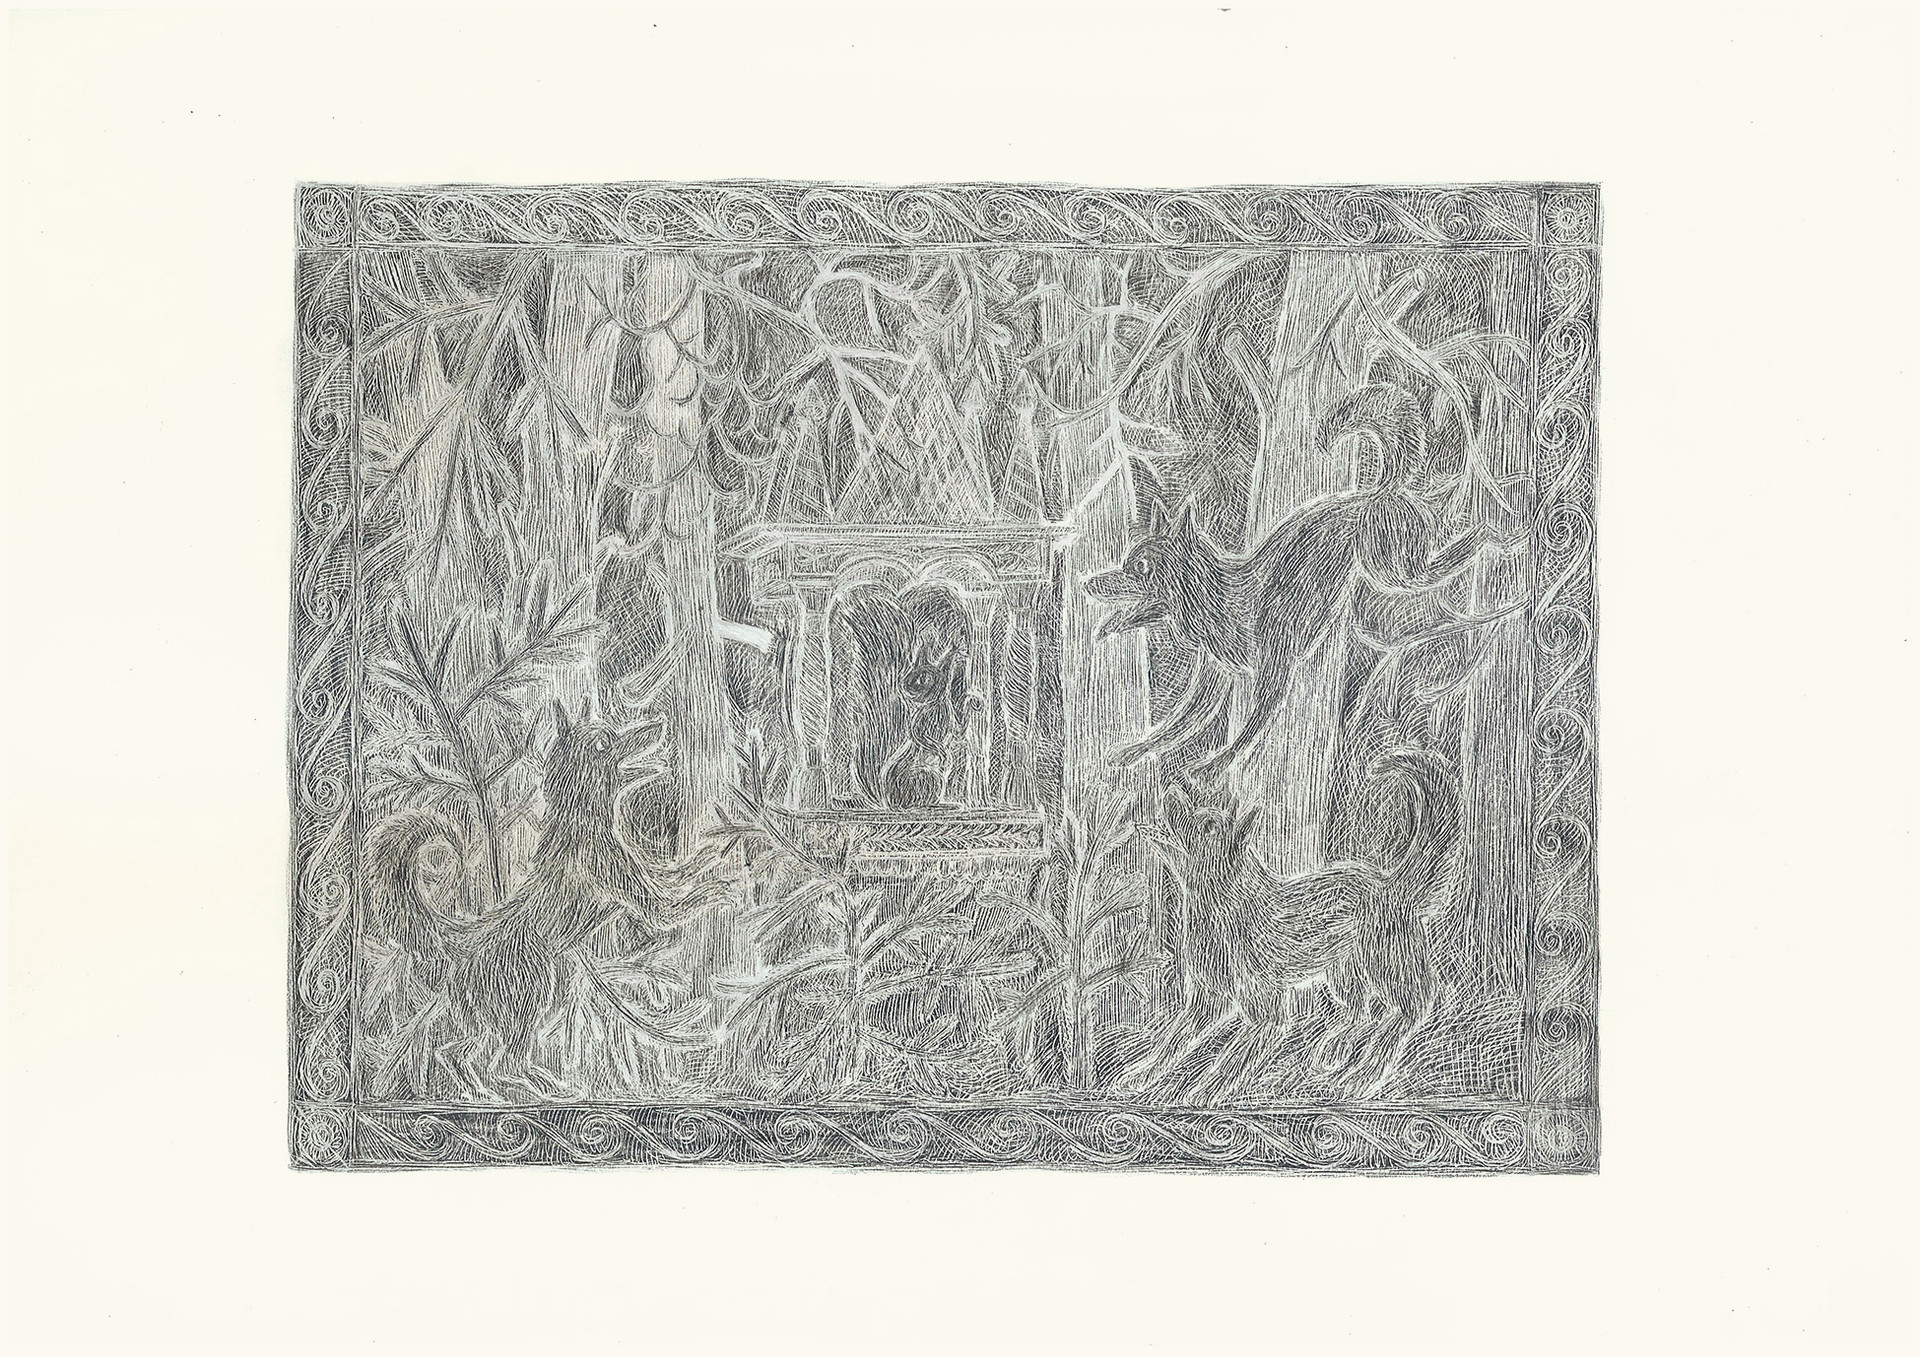 Dogs Barking at Squirrel, 2012. Pencils on paper, 29.7 × 42 cm